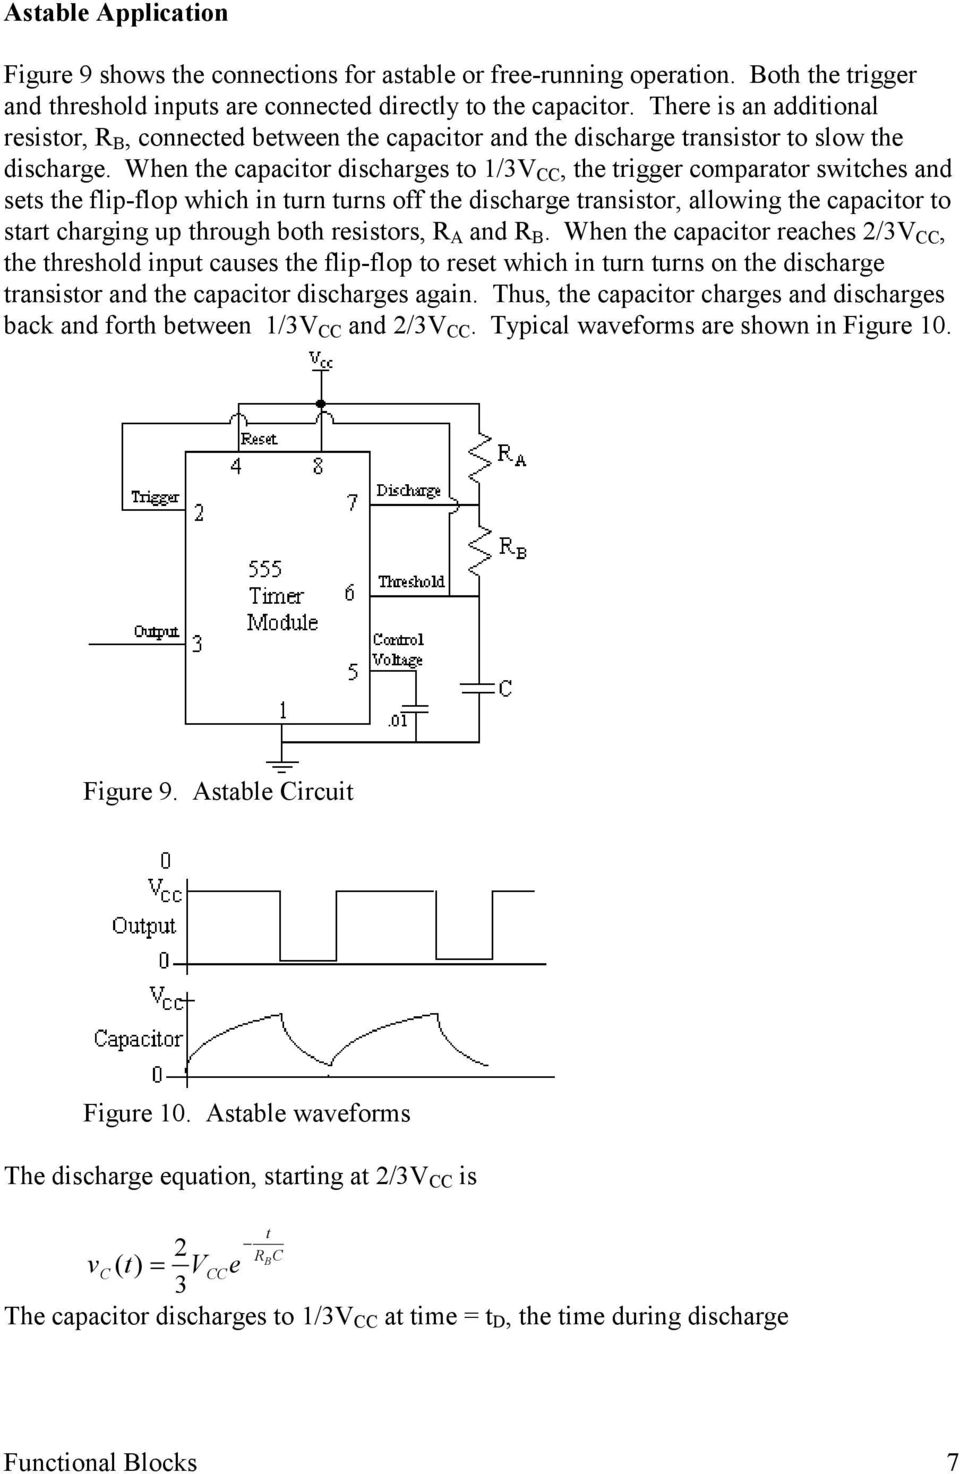 When the capacitor discharges to 1/V CC, the trigger comparator switches and sets the flip-flop which in turn turns off the discharge transistor, allowing the capacitor to start charging up through